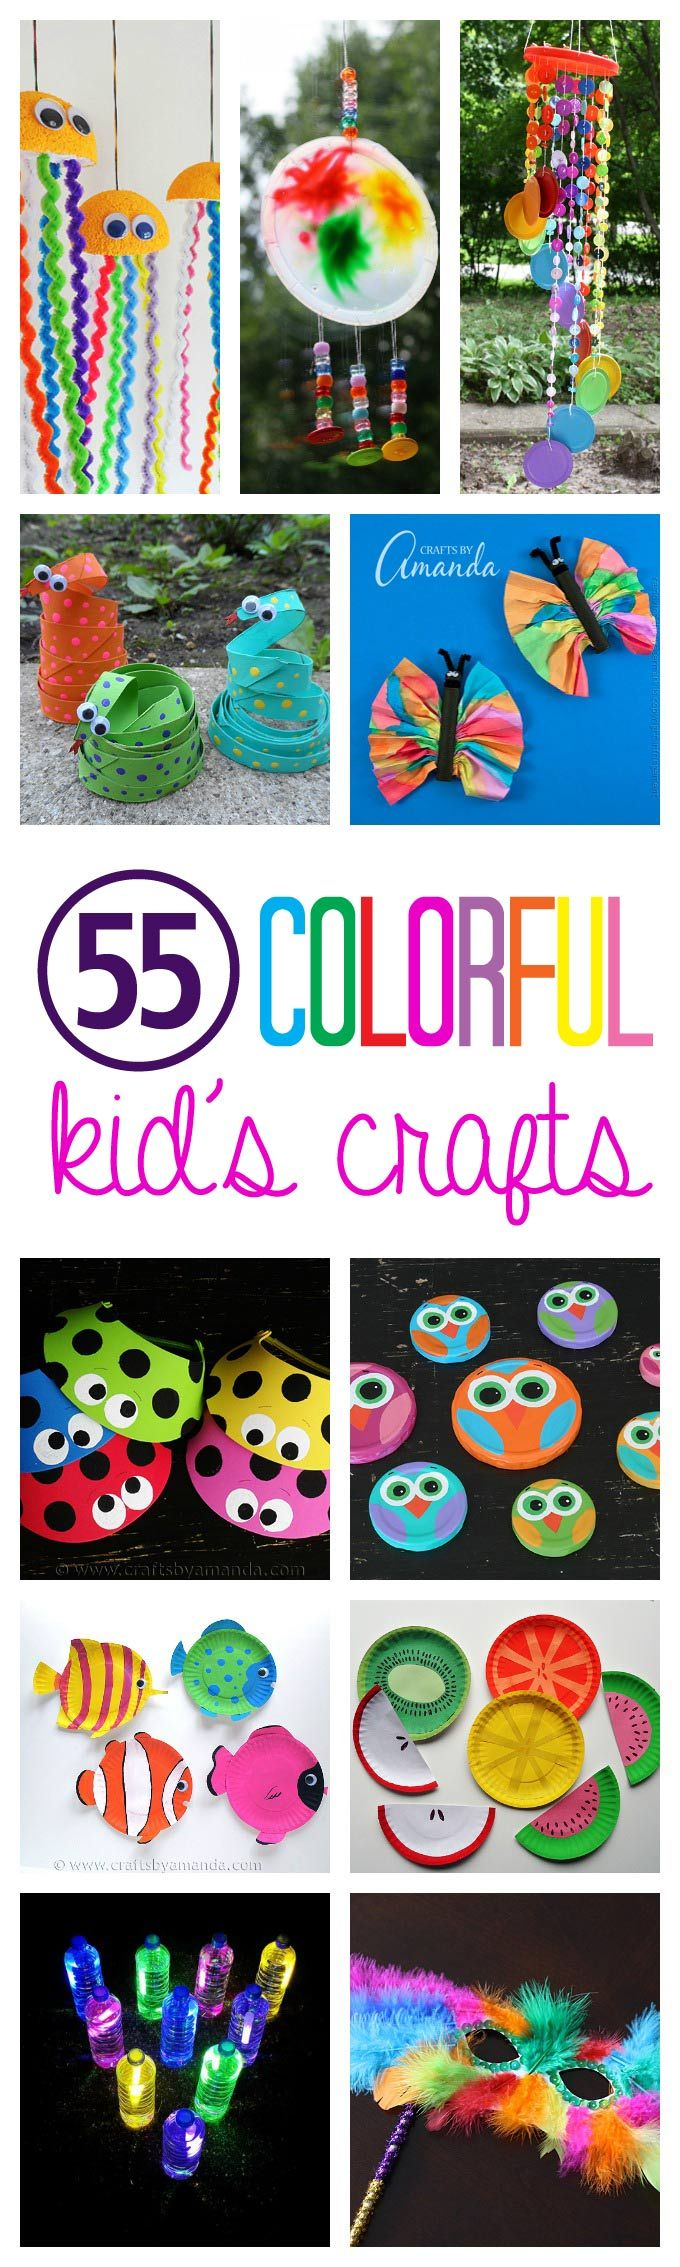 55+ Colorful Kid's Crafts: make cute monsters from recycled materials and  other supplies.